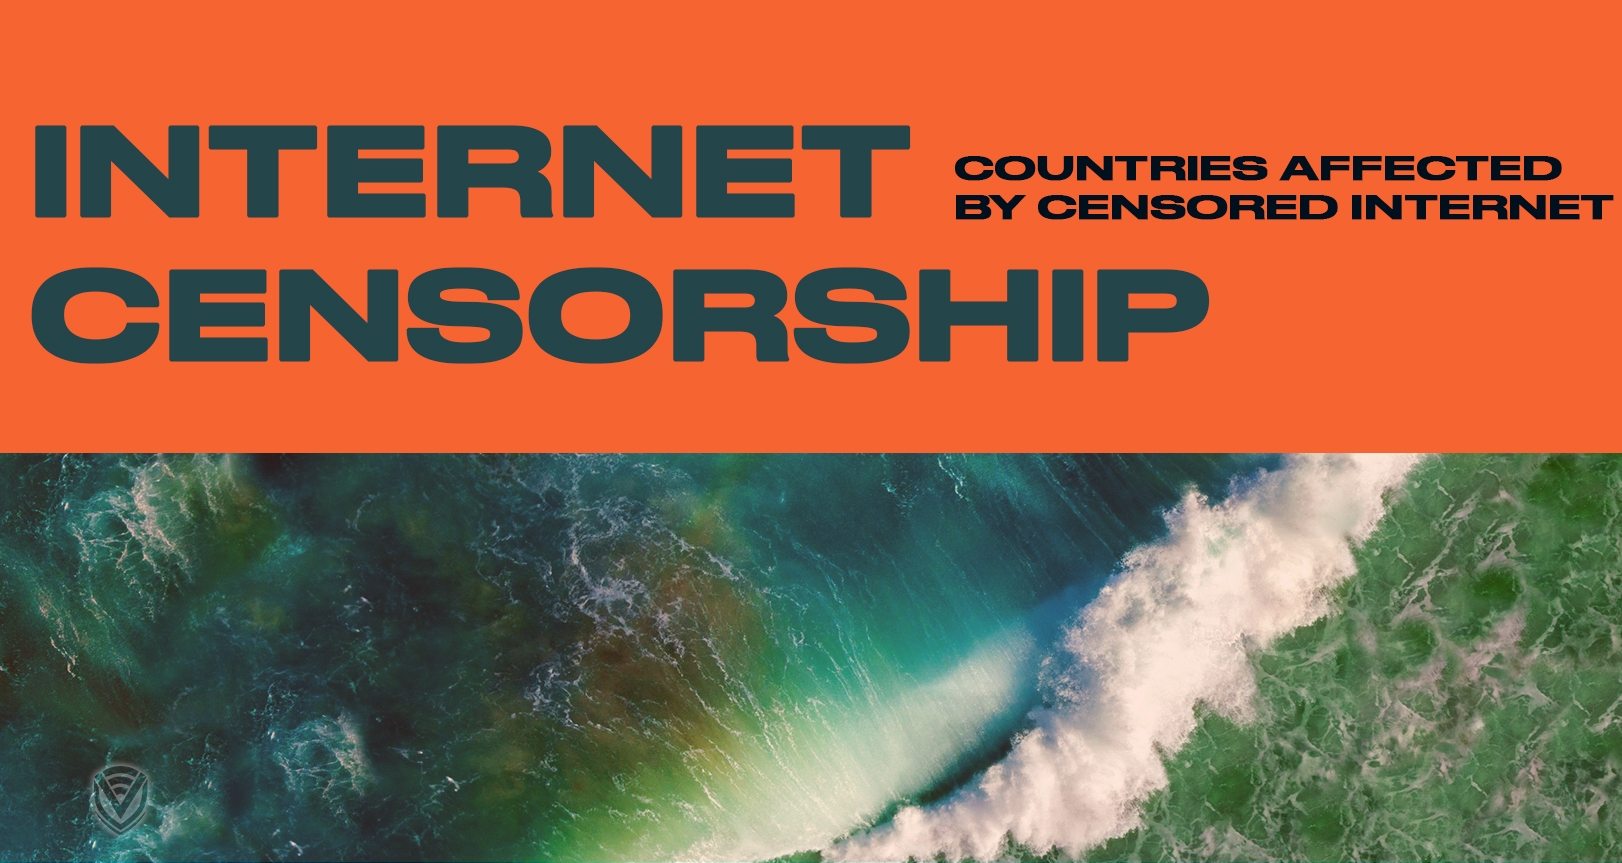 Countries with Internet Censorships You Should Know About